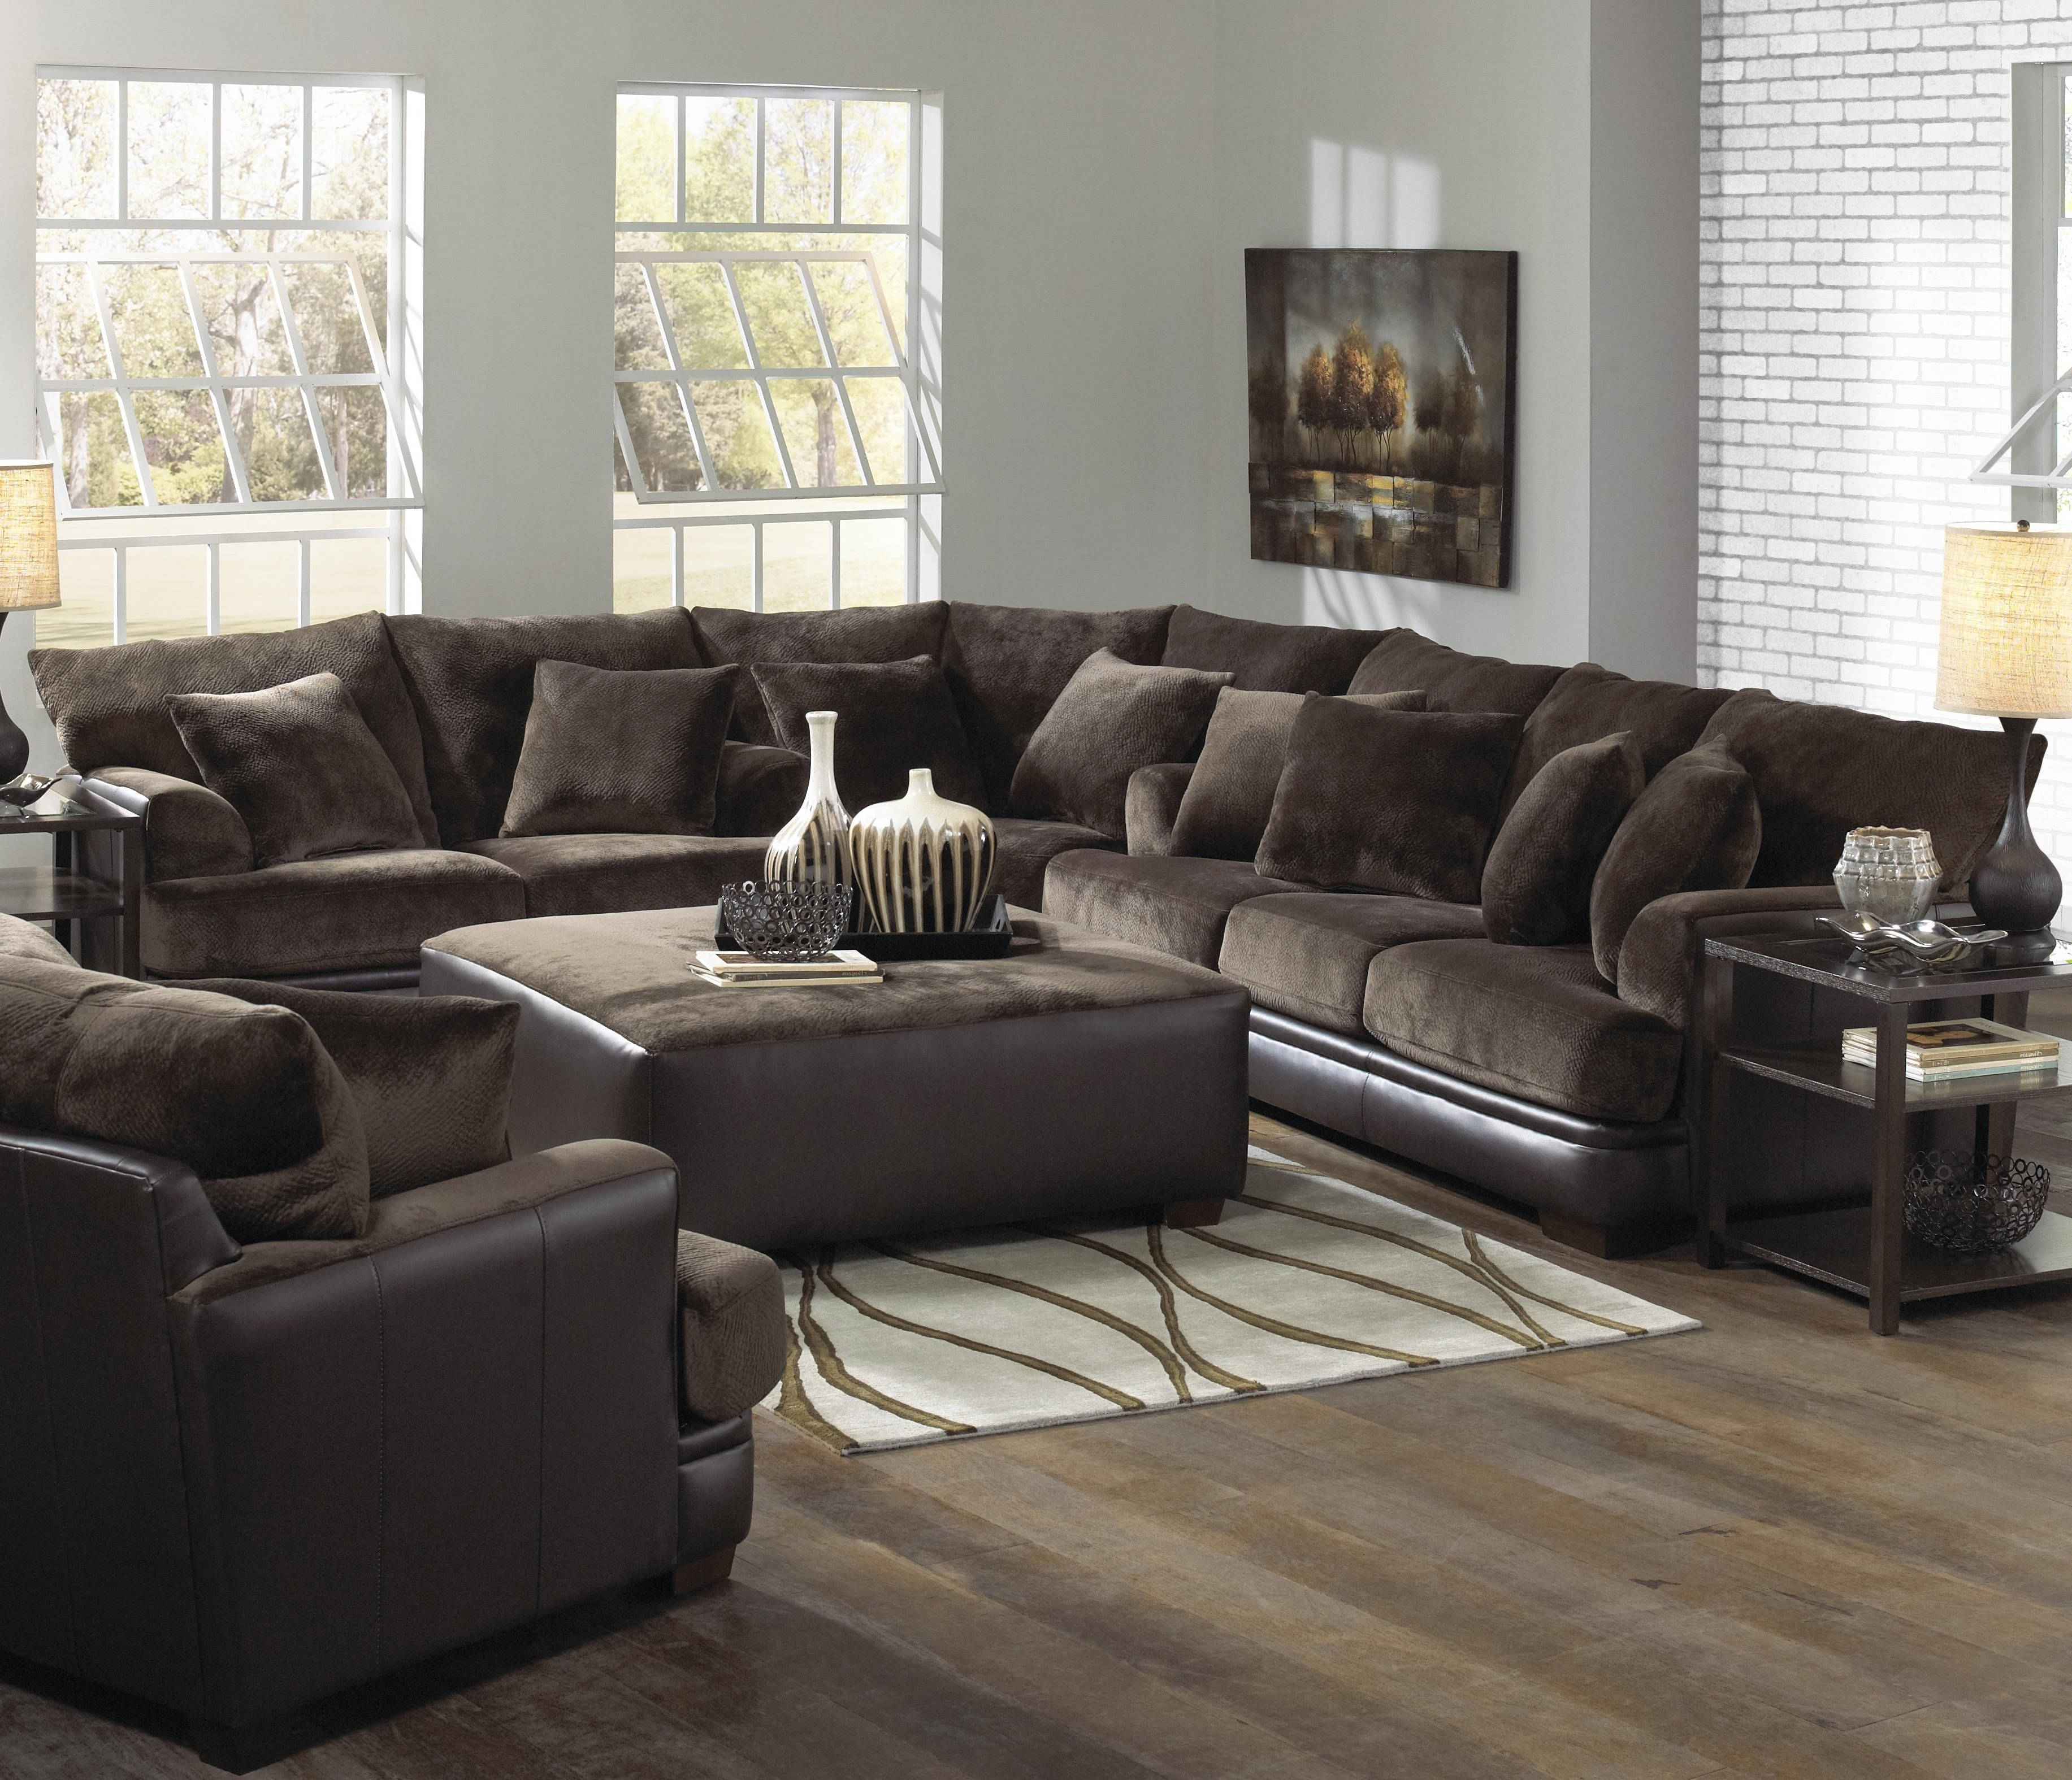 Extra Large U Shaped Sectionals Within Most Recent Big Sofas Wide Seat Sectional Small U Shaped Sectional Top Rated (View 2 of 15)